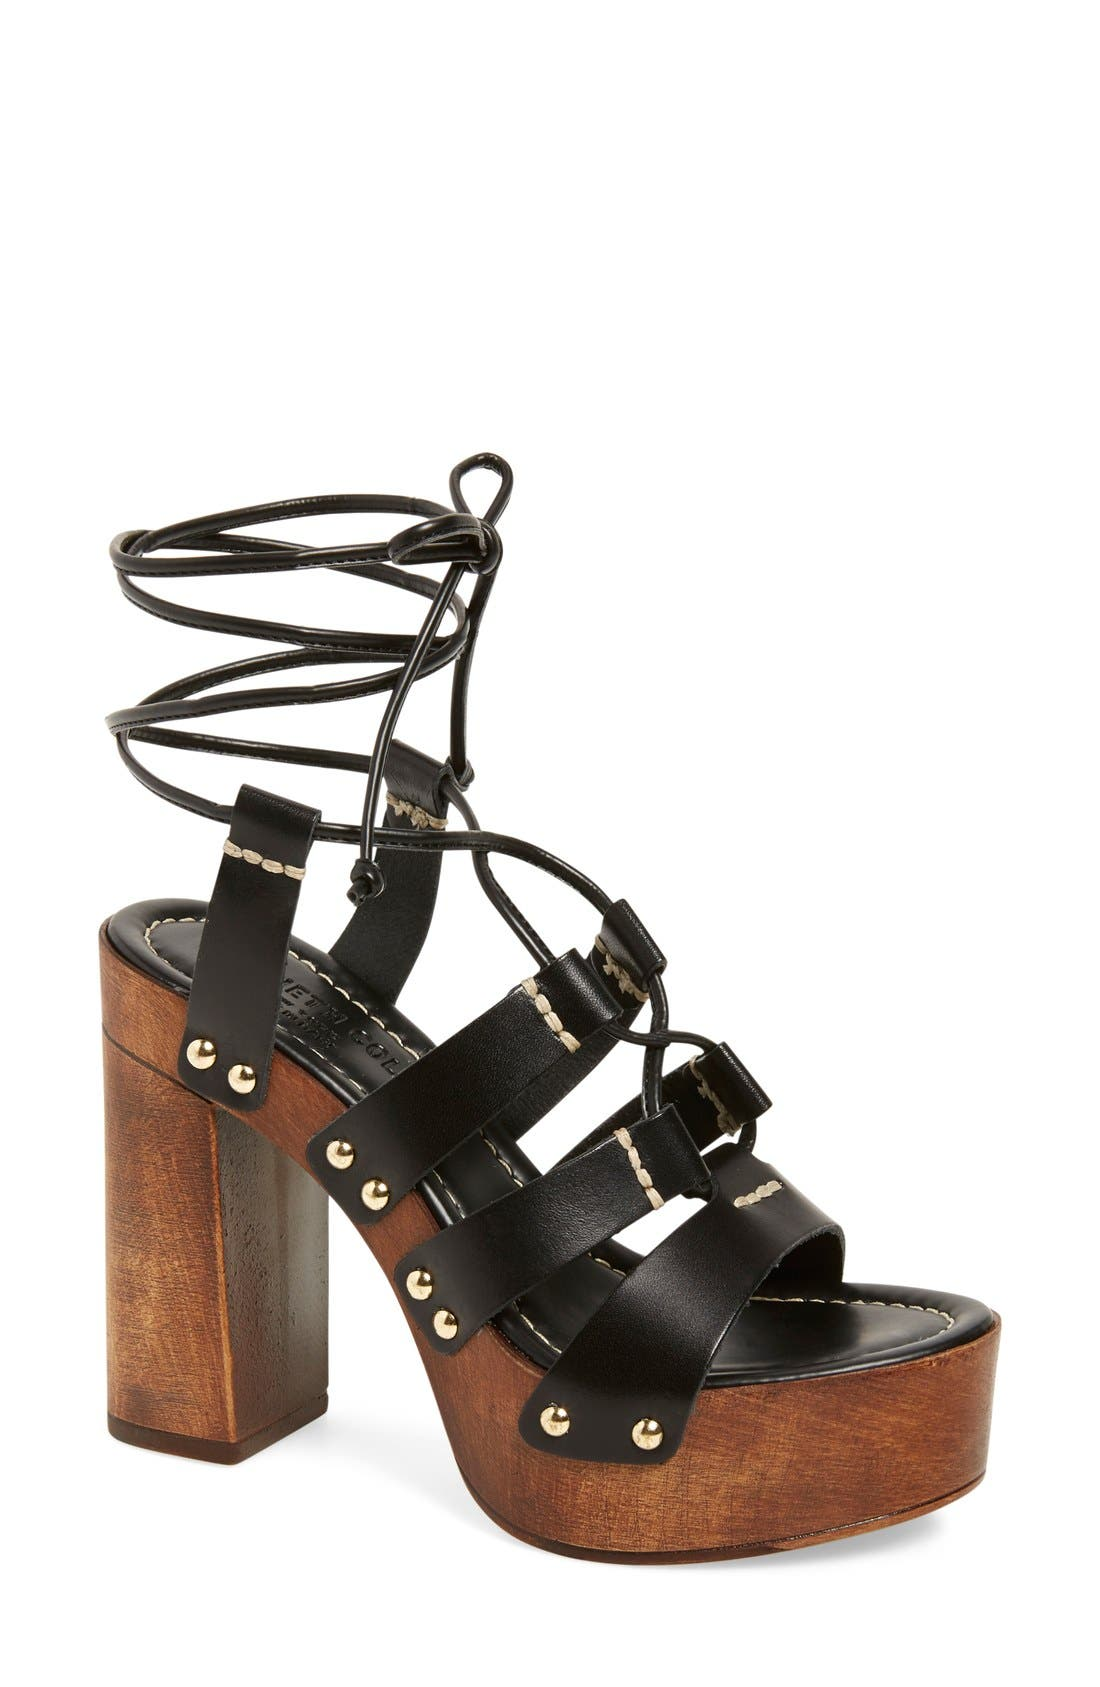 Main Image - Kenneth Cole New York 'Kenzie' Lace-Up Sandal (Women)